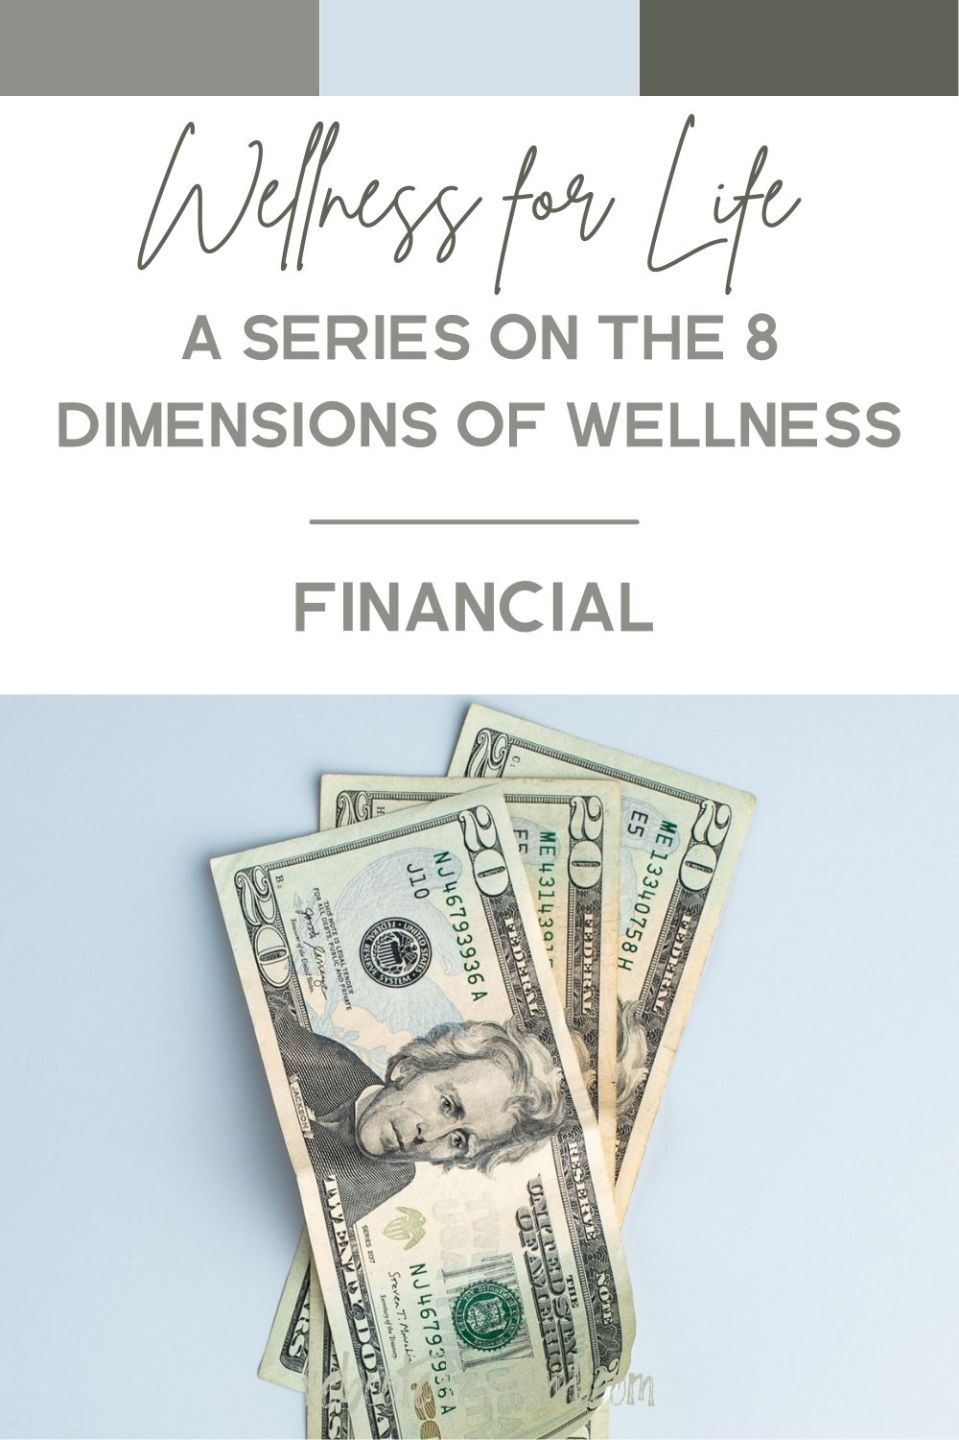 Financial Wellness: One of the 8 Dimensions of Wellness